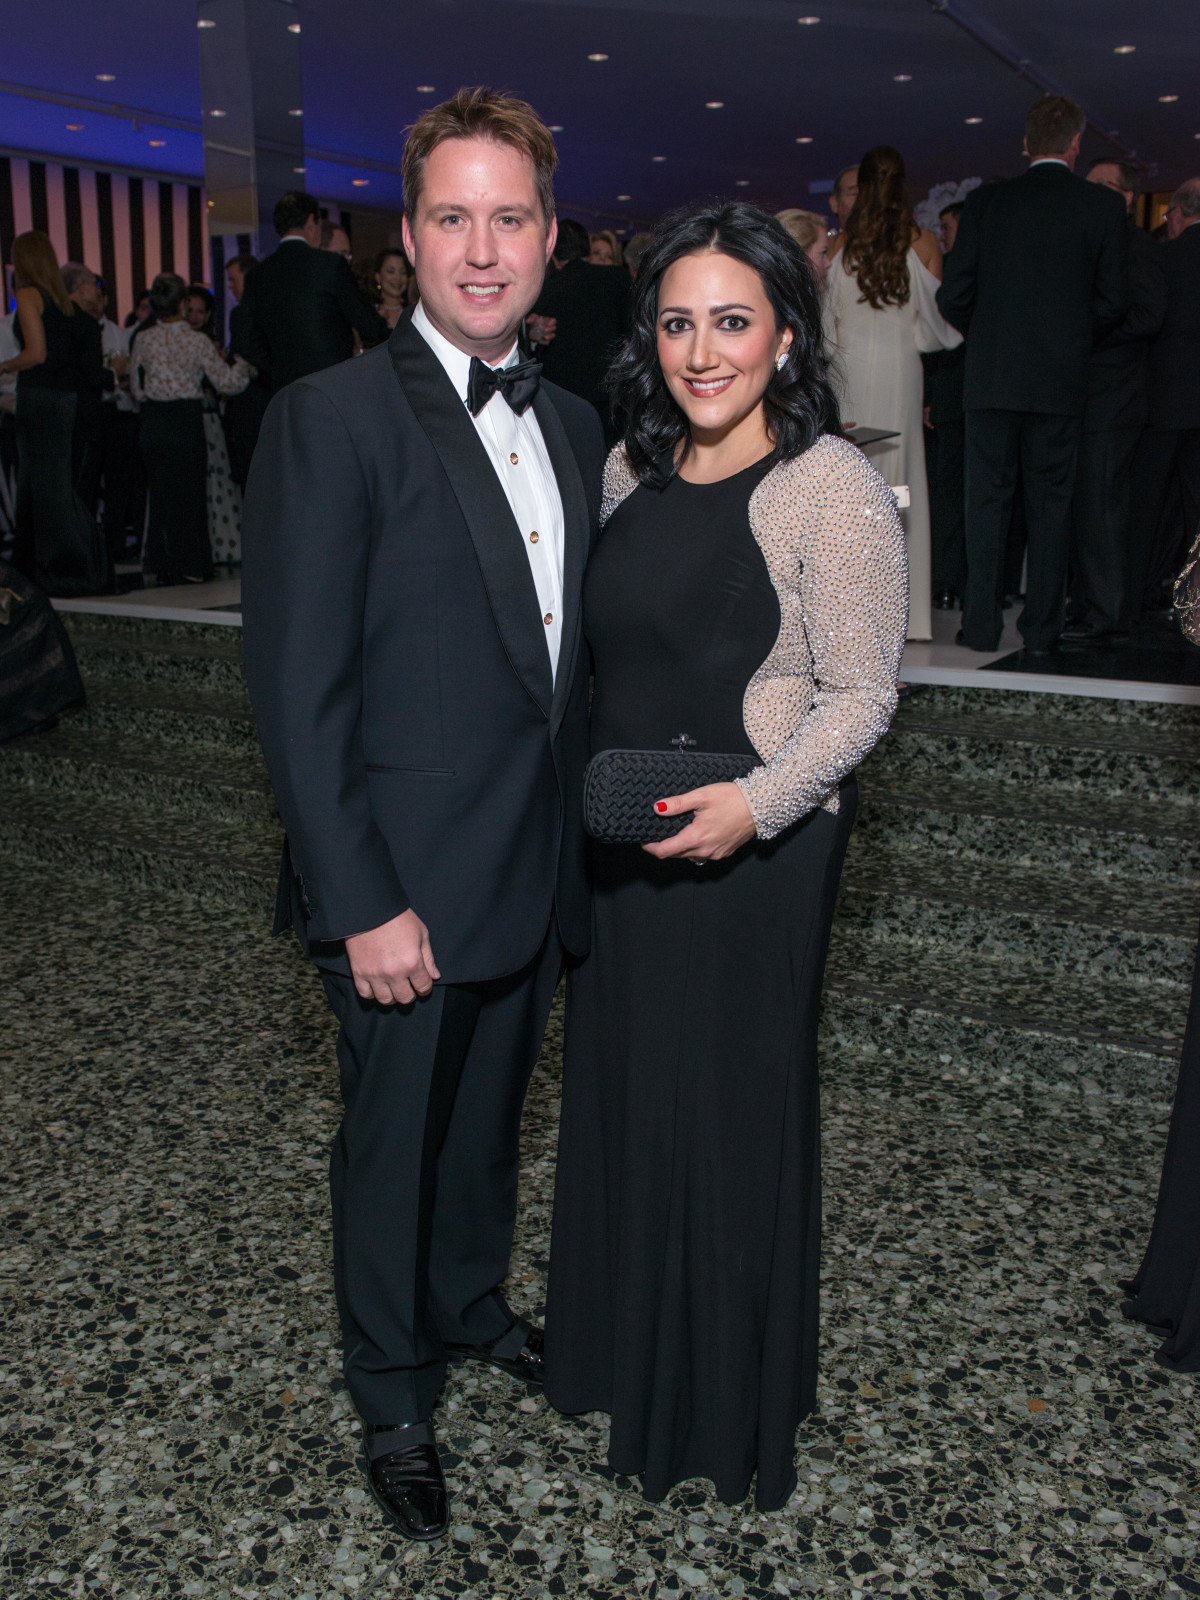 News, Shelby, Museum of Fine Arts gala, Oct. 2015, Todd Forester, Kelli Kickerillo